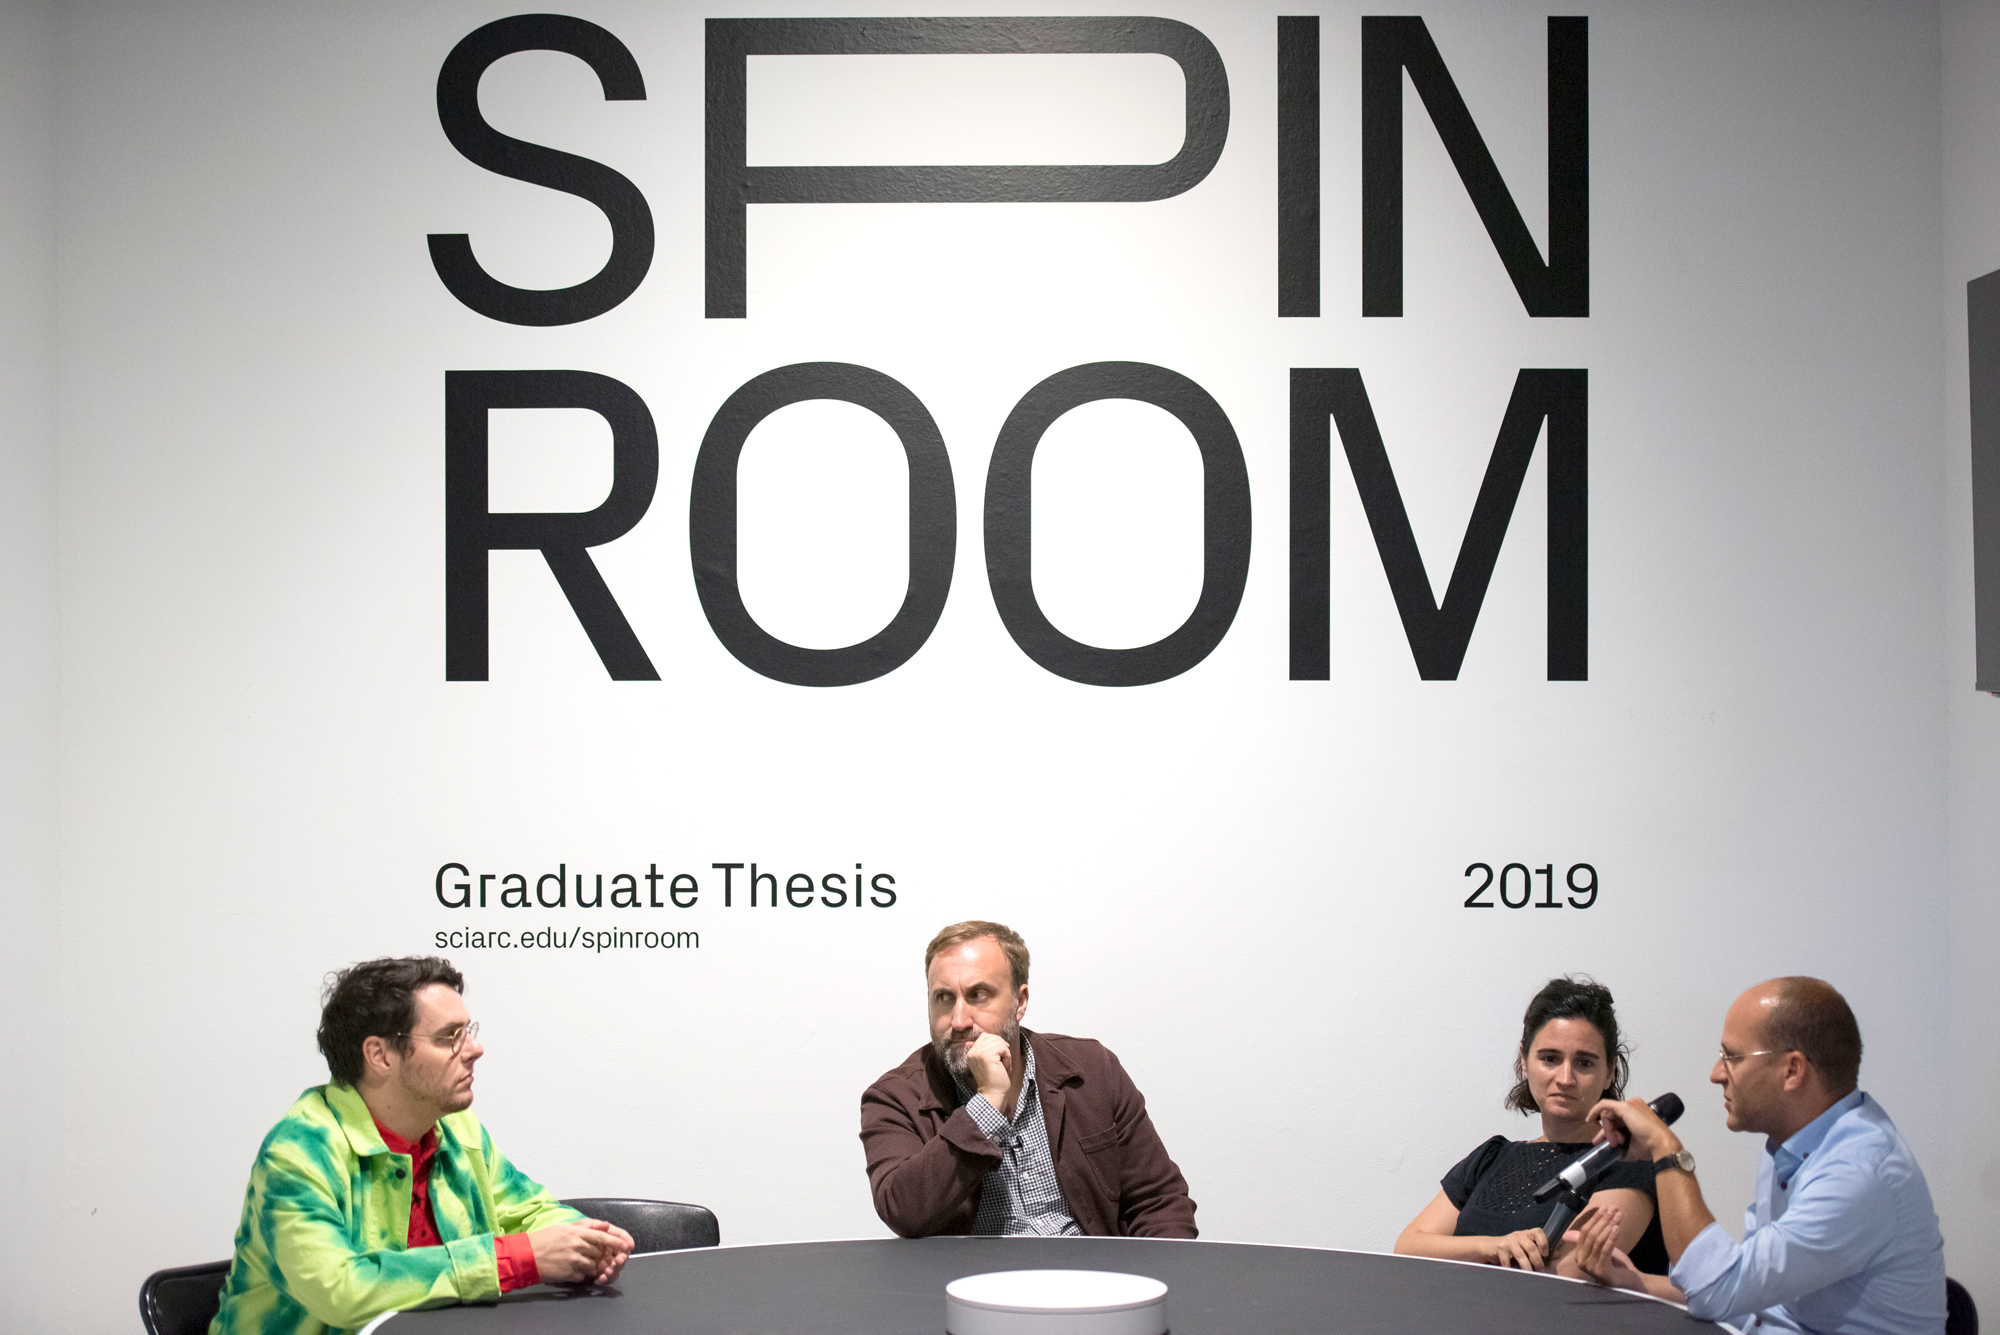 graduate thesis spin room